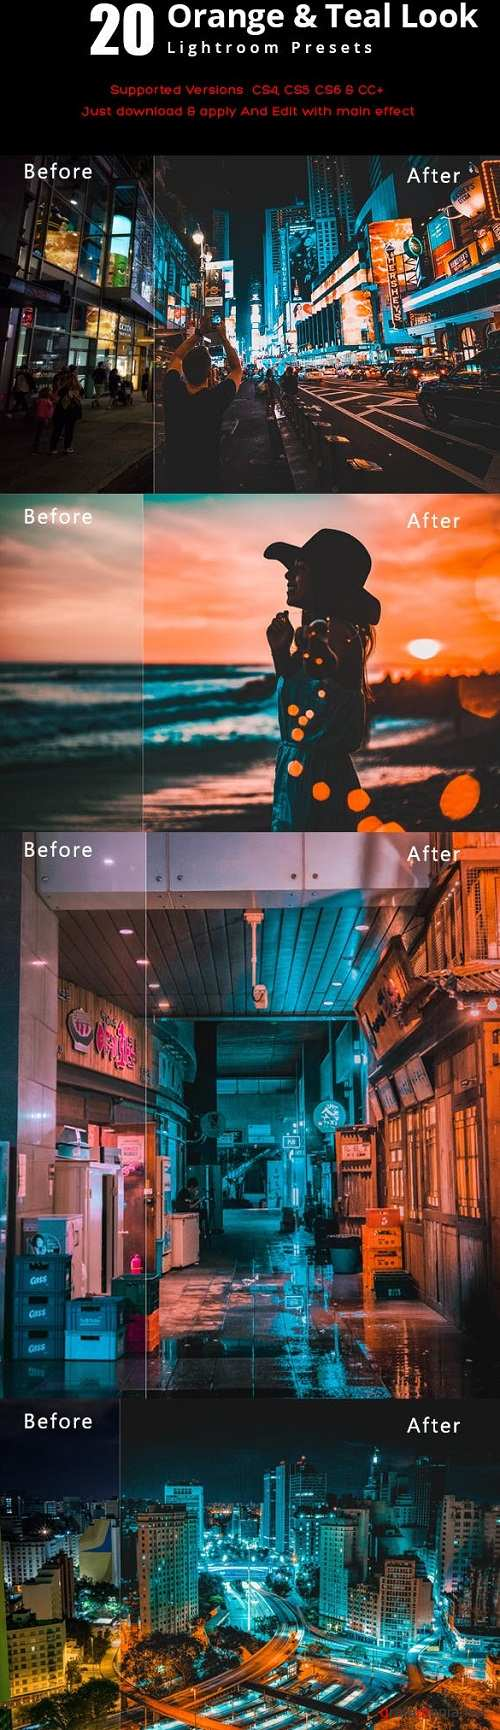 20 Orange & Teal Look Lightroom Preset 23119736